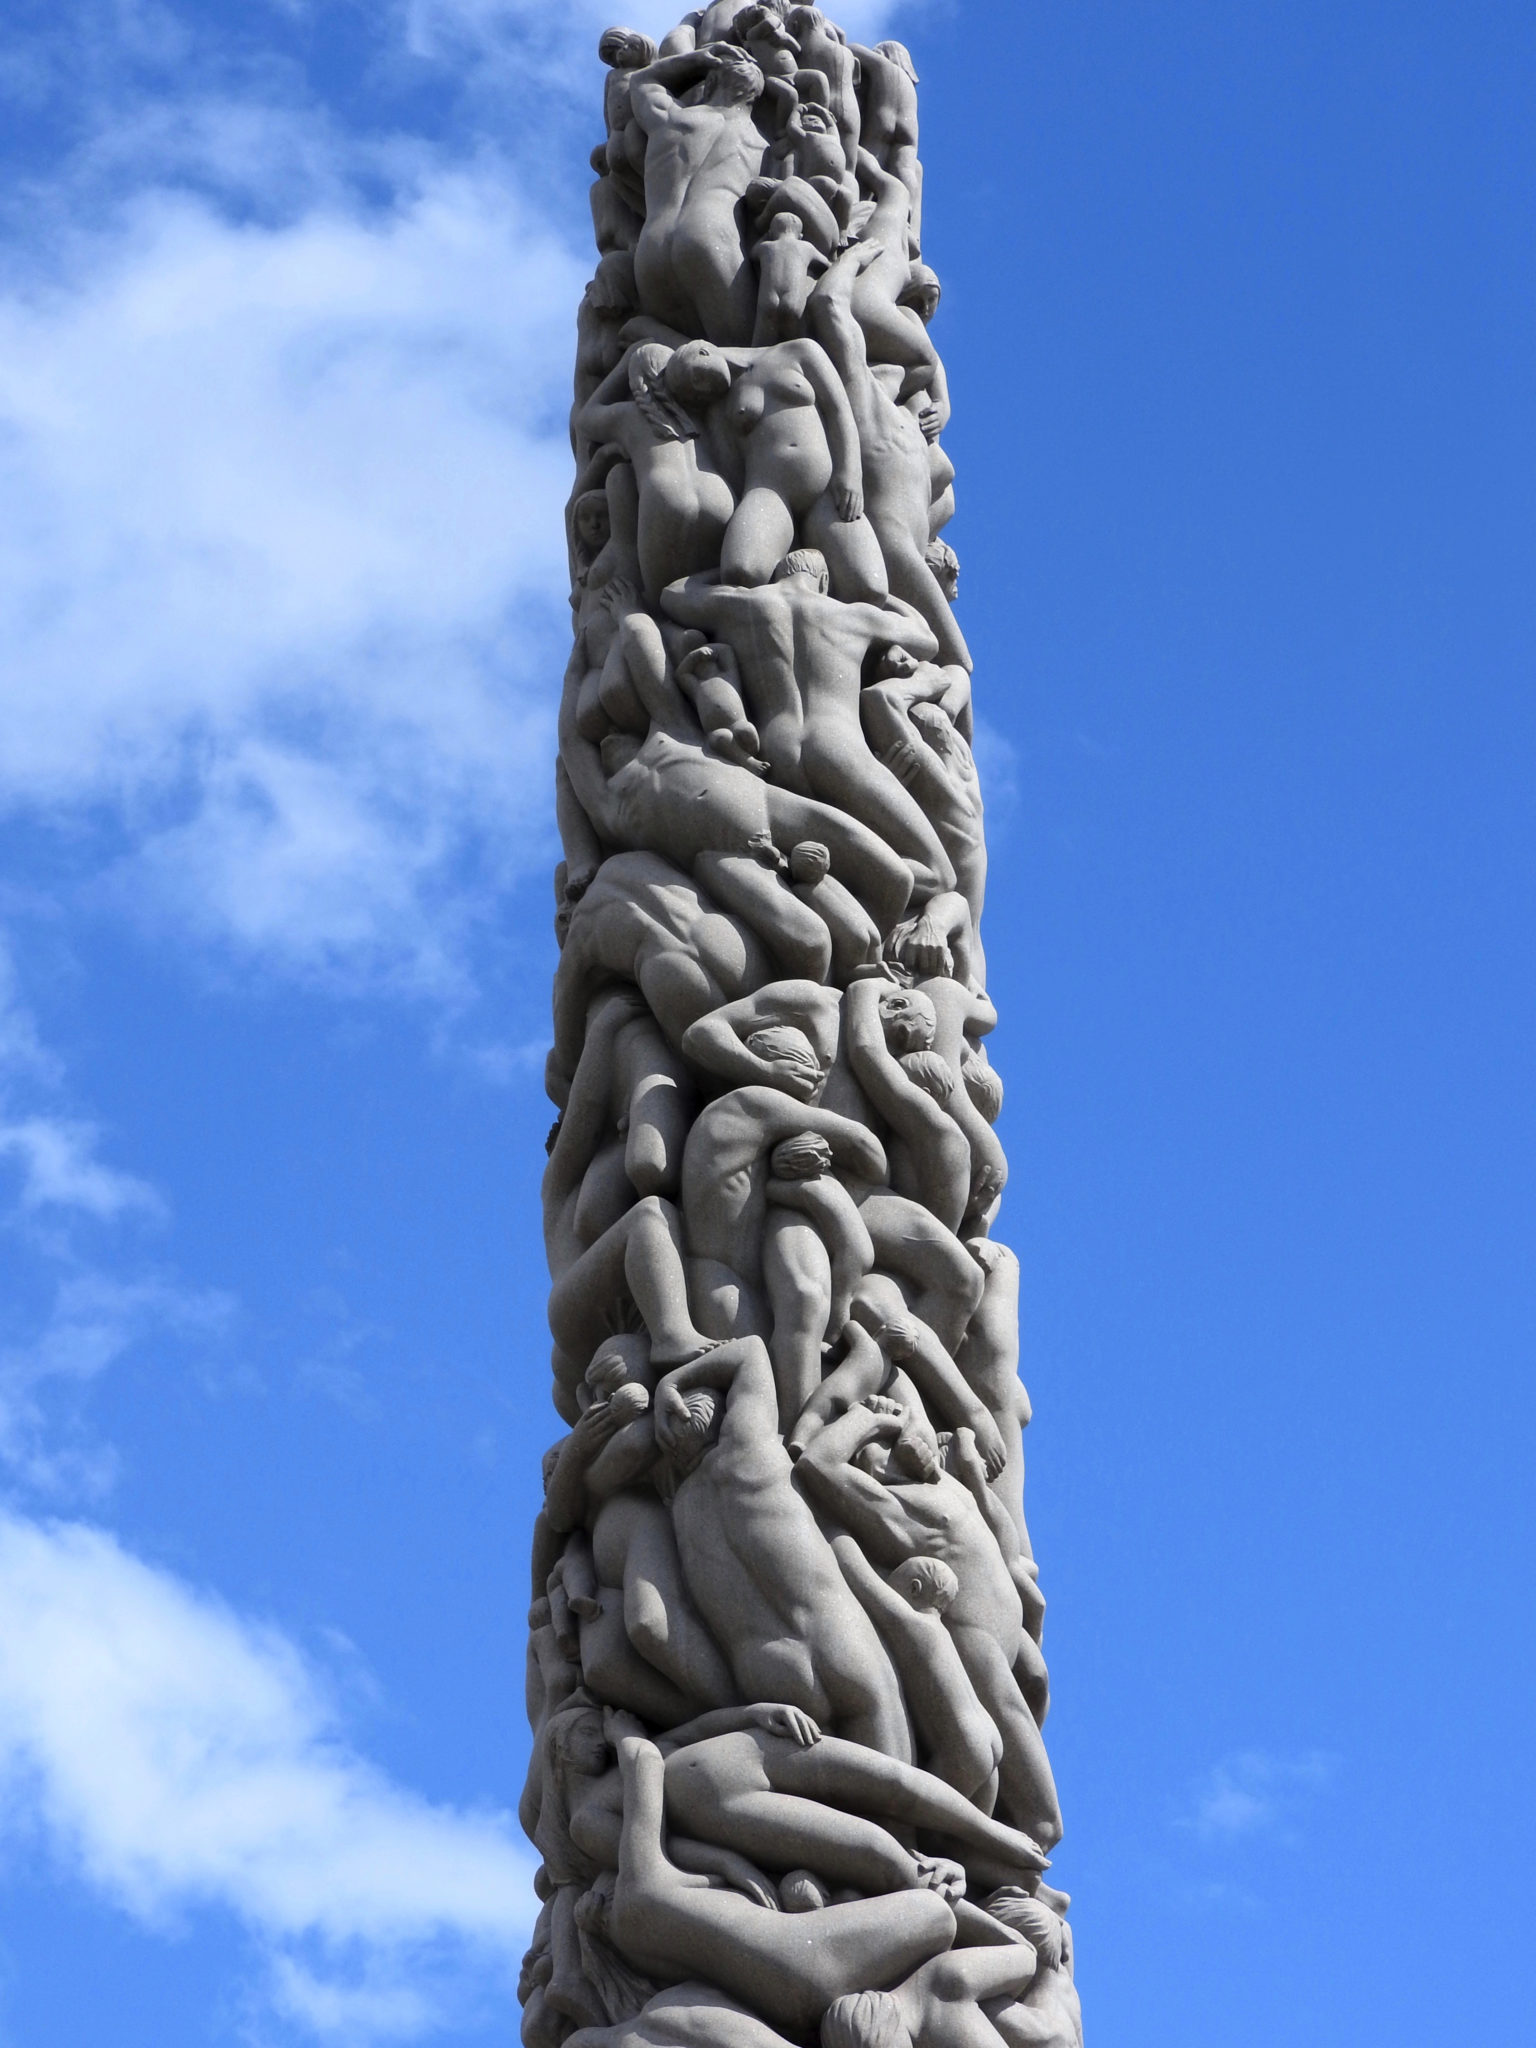 Stone monolith showing intertwined bodies